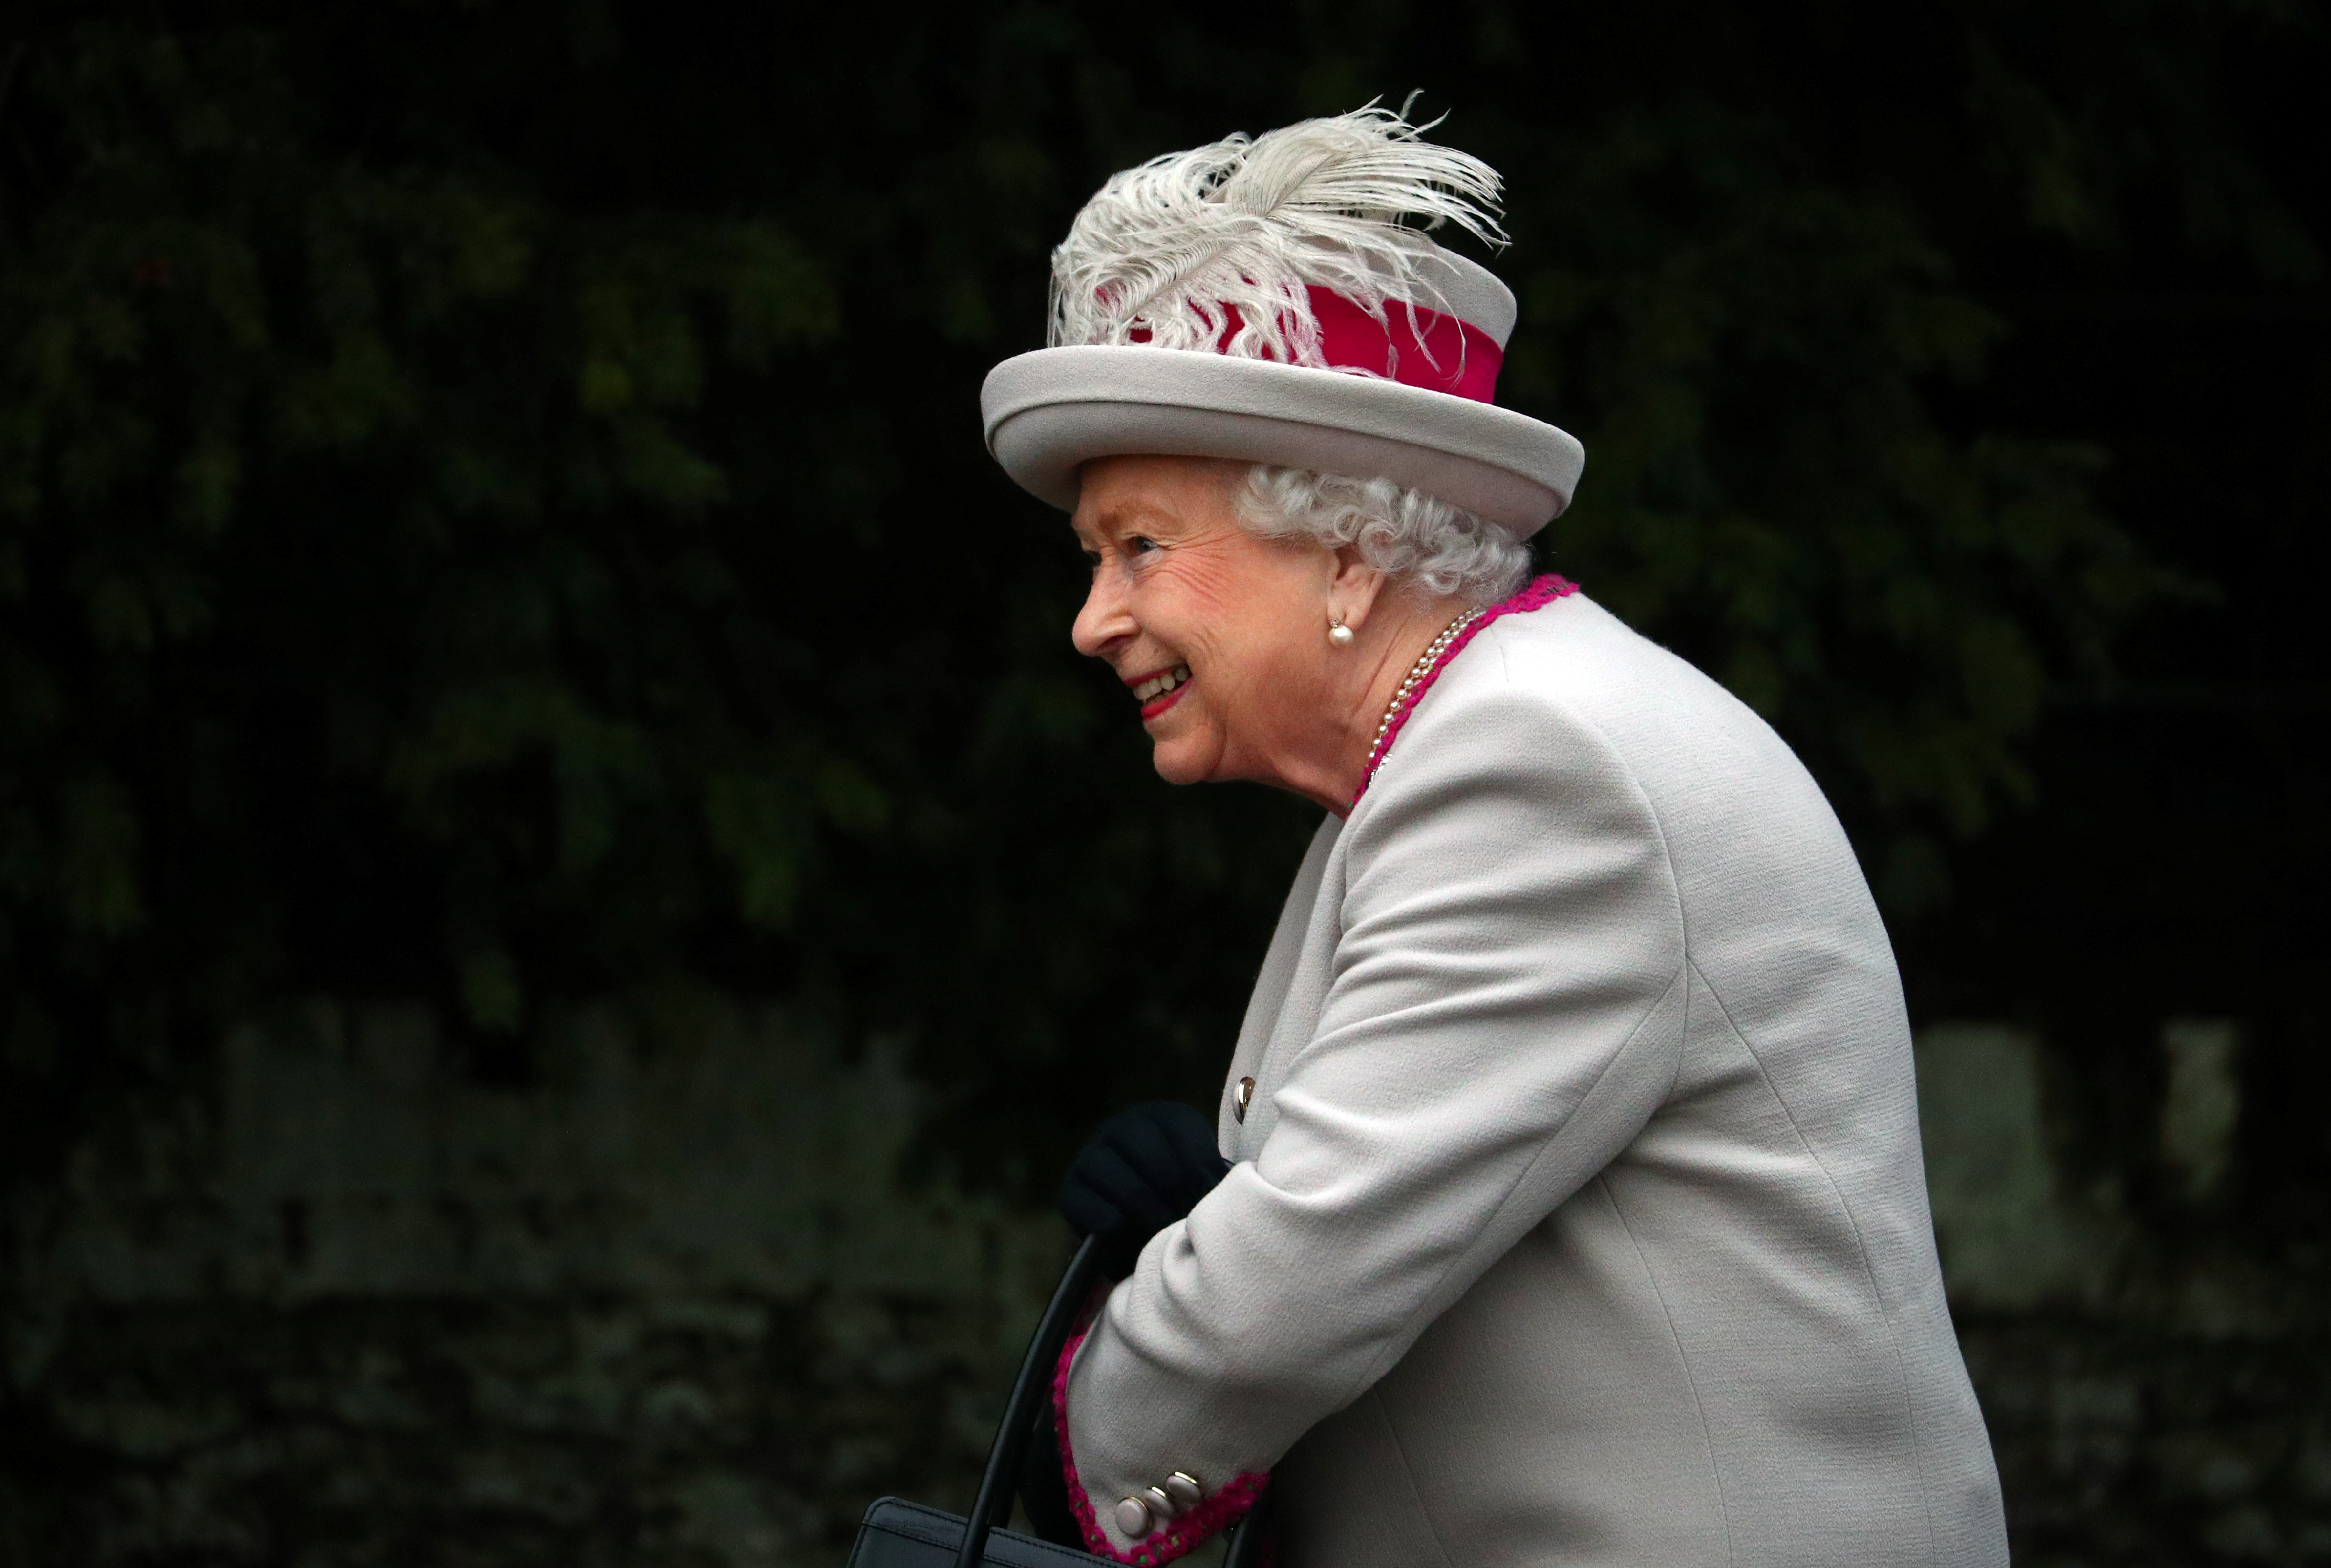 Britain's Queen Elizabeth arrives at St Mary Magdalene's church for the Royal Family's Christmas Day service on the Sandringham estate in eastern England, Britain, December 25, 2018. REUTERS/Hannah McKay